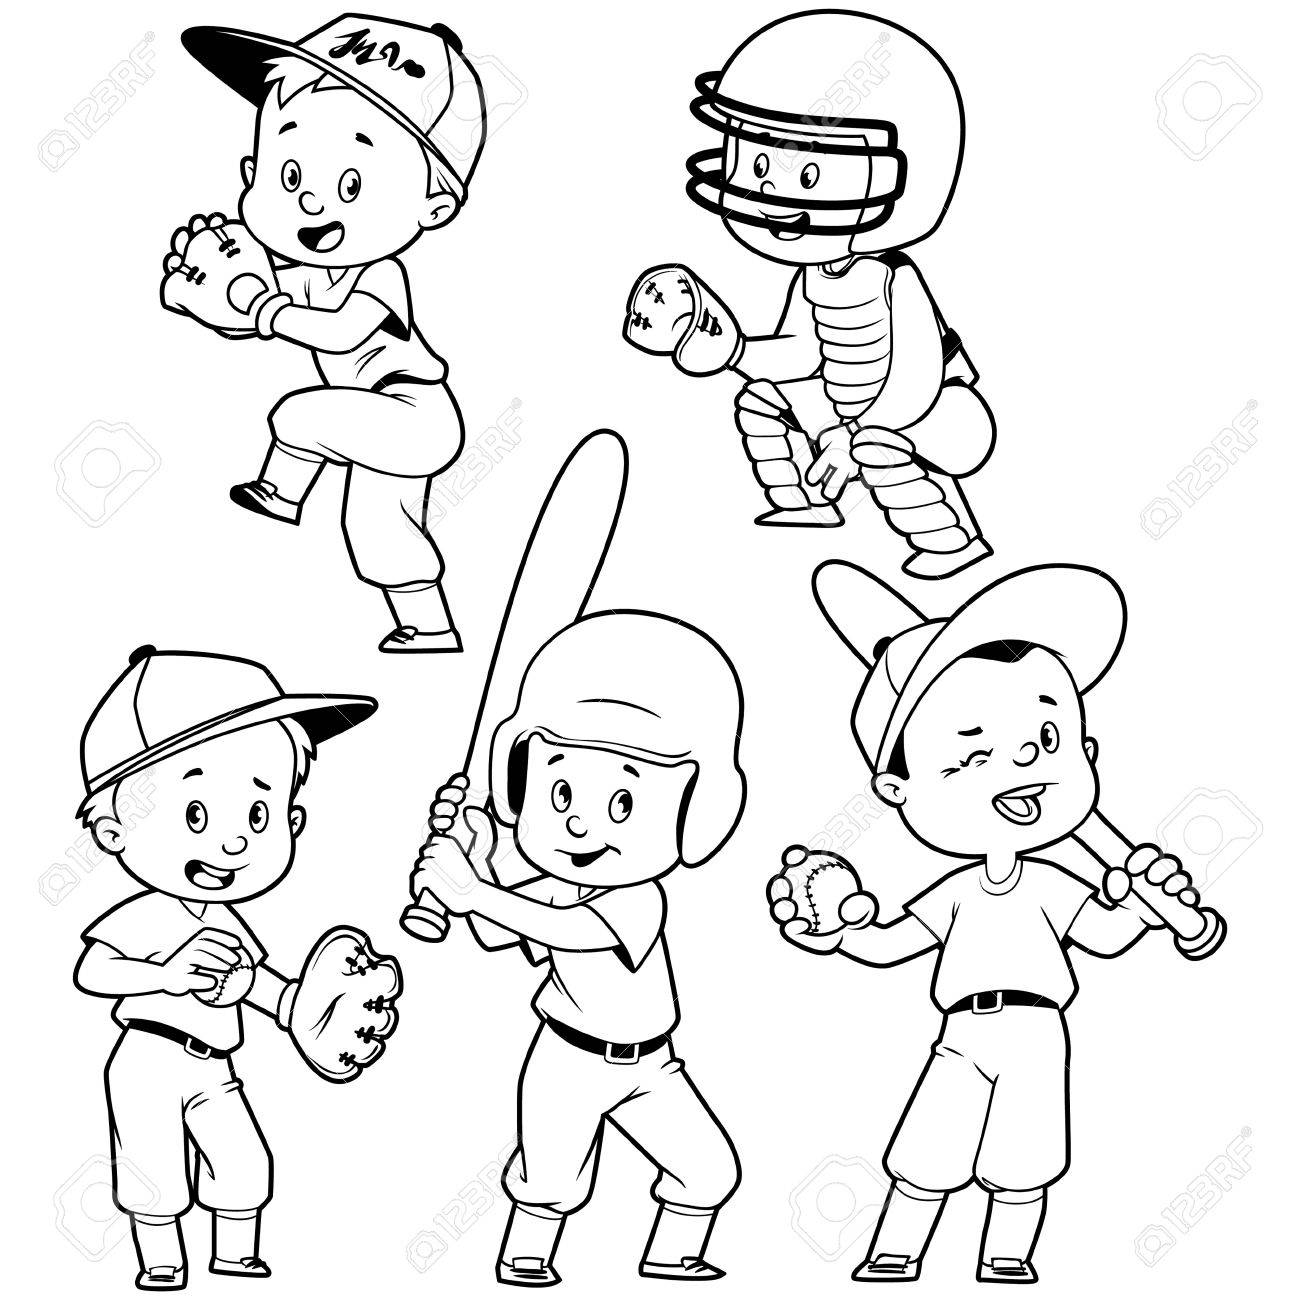 Cartoon kids playing baseball. Vector clip art illustration on...